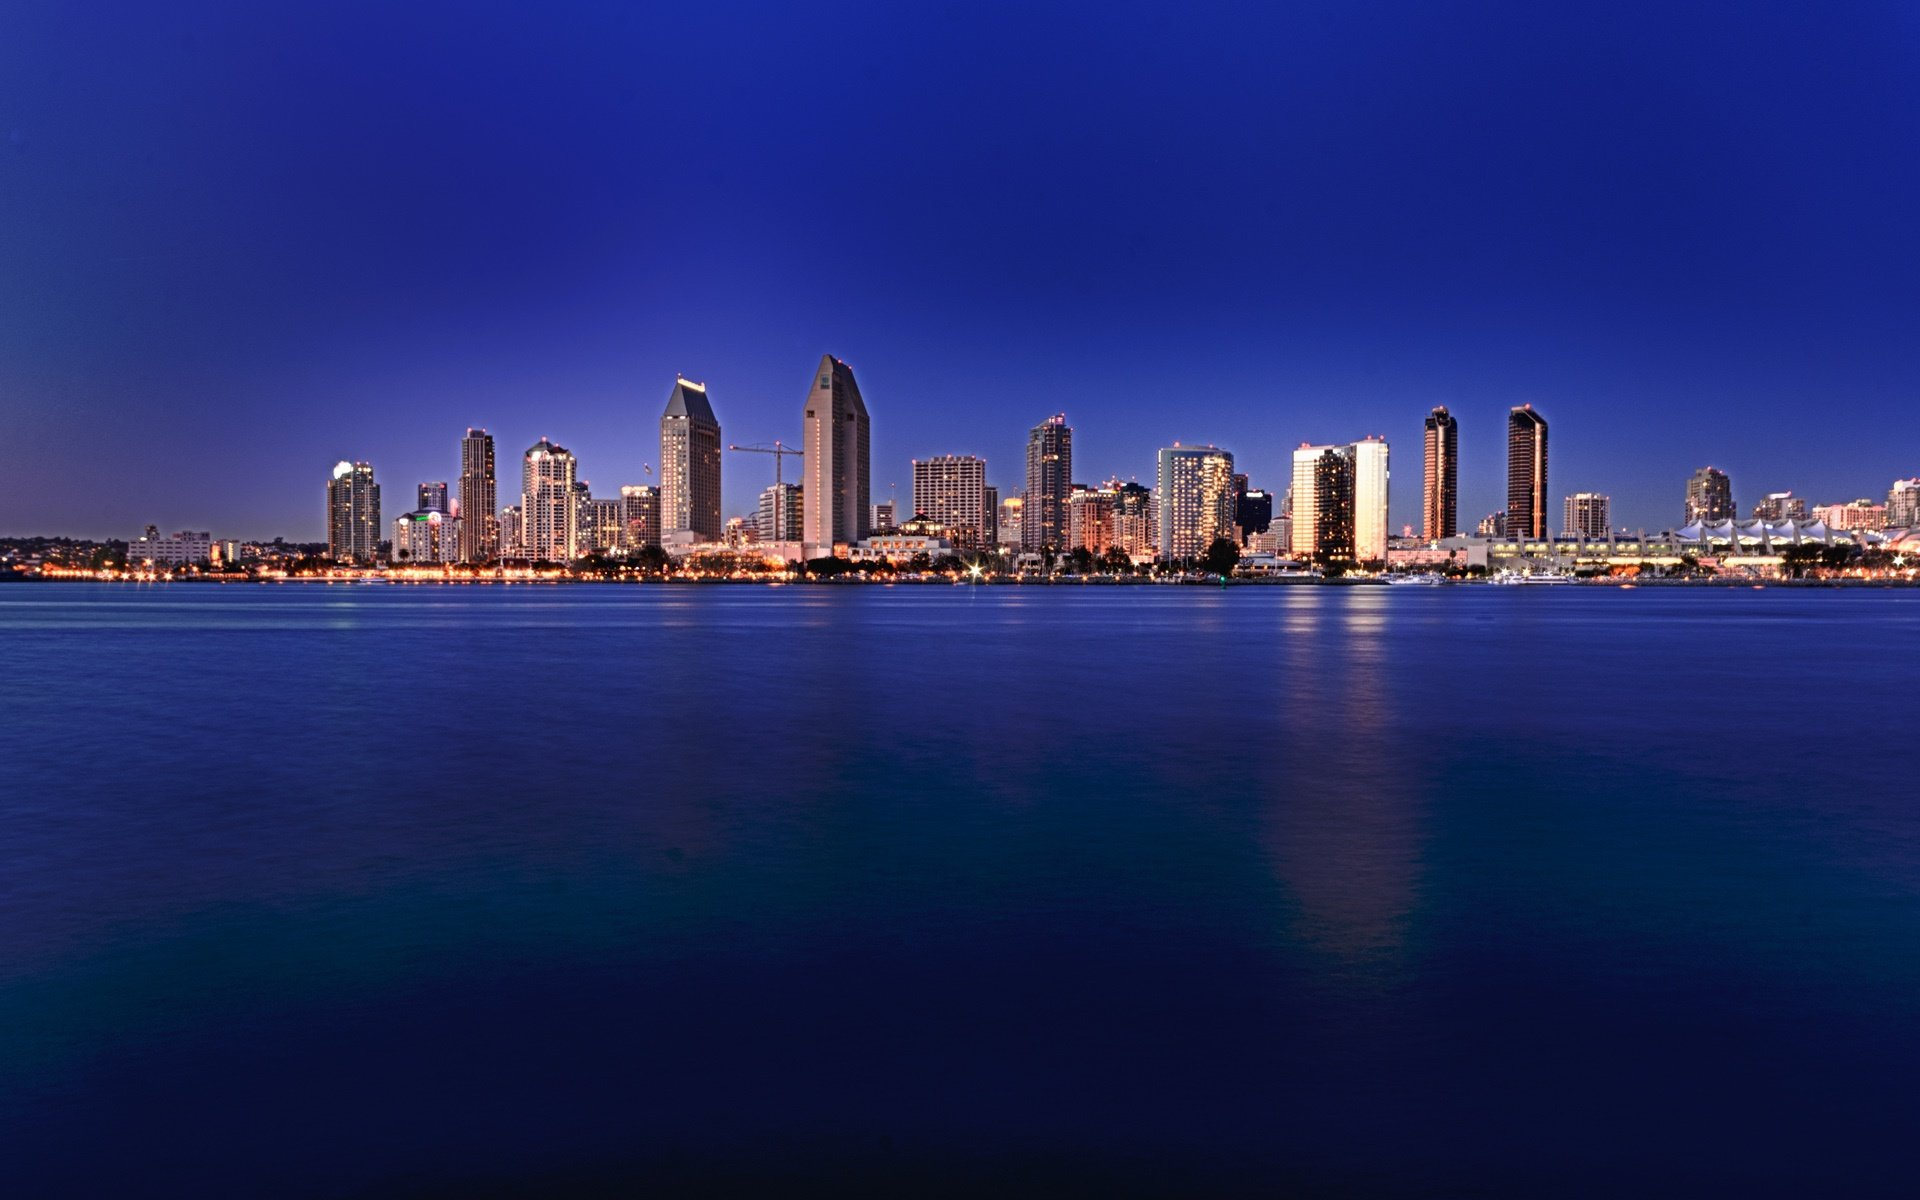 Hd Wallpapers San Diego California Beaches 1920 X 1200 1409 Kb Jpeg 1920x1200